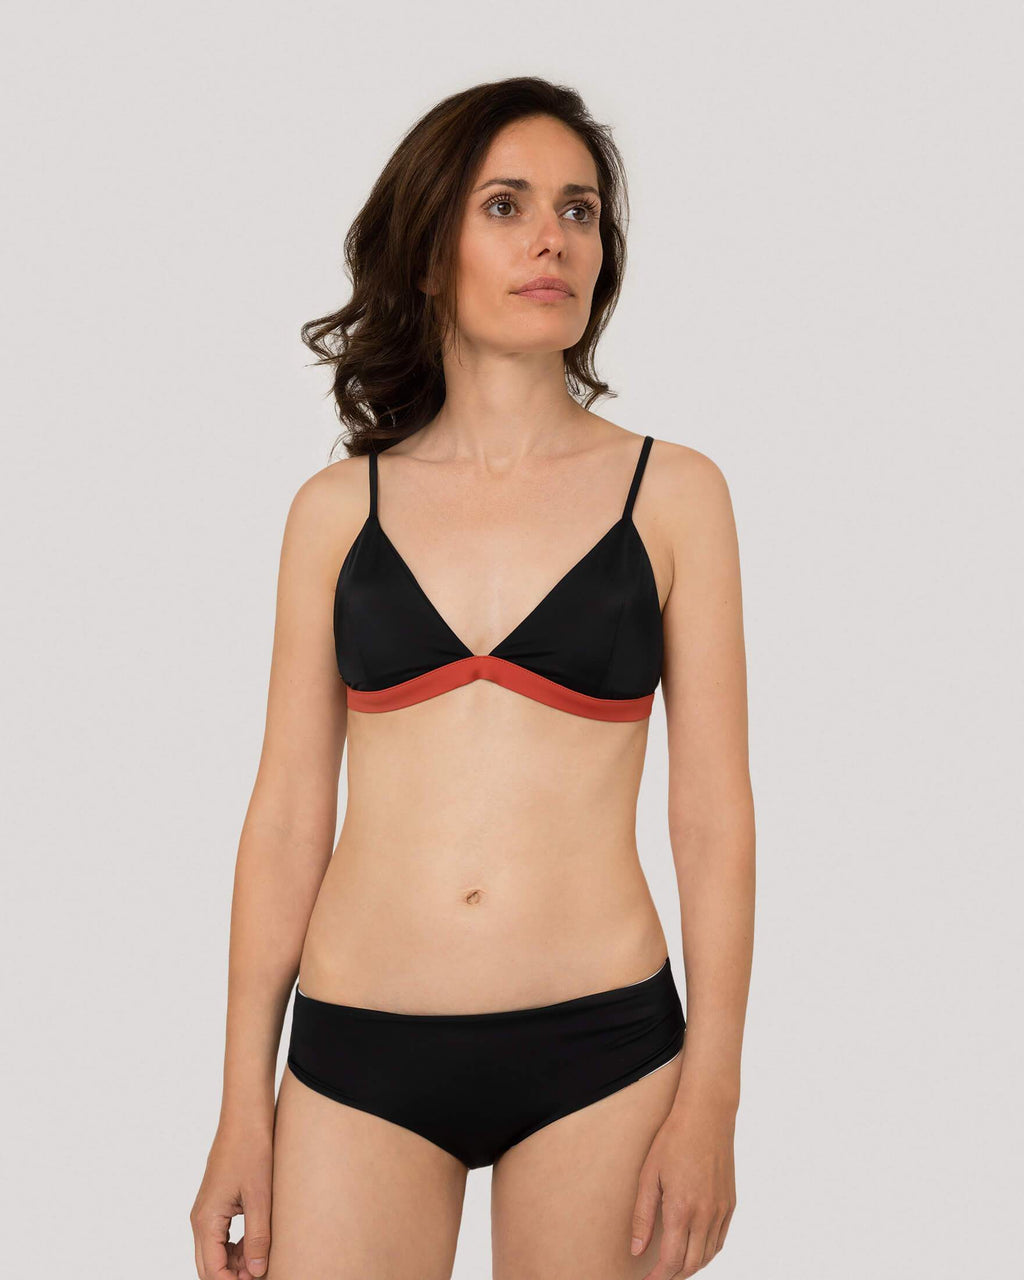 variant_1 | EN Bikini Top Triangle Black Orange Women woodlike | DE Bikini Top Triangel Schwarz Damen woodlike